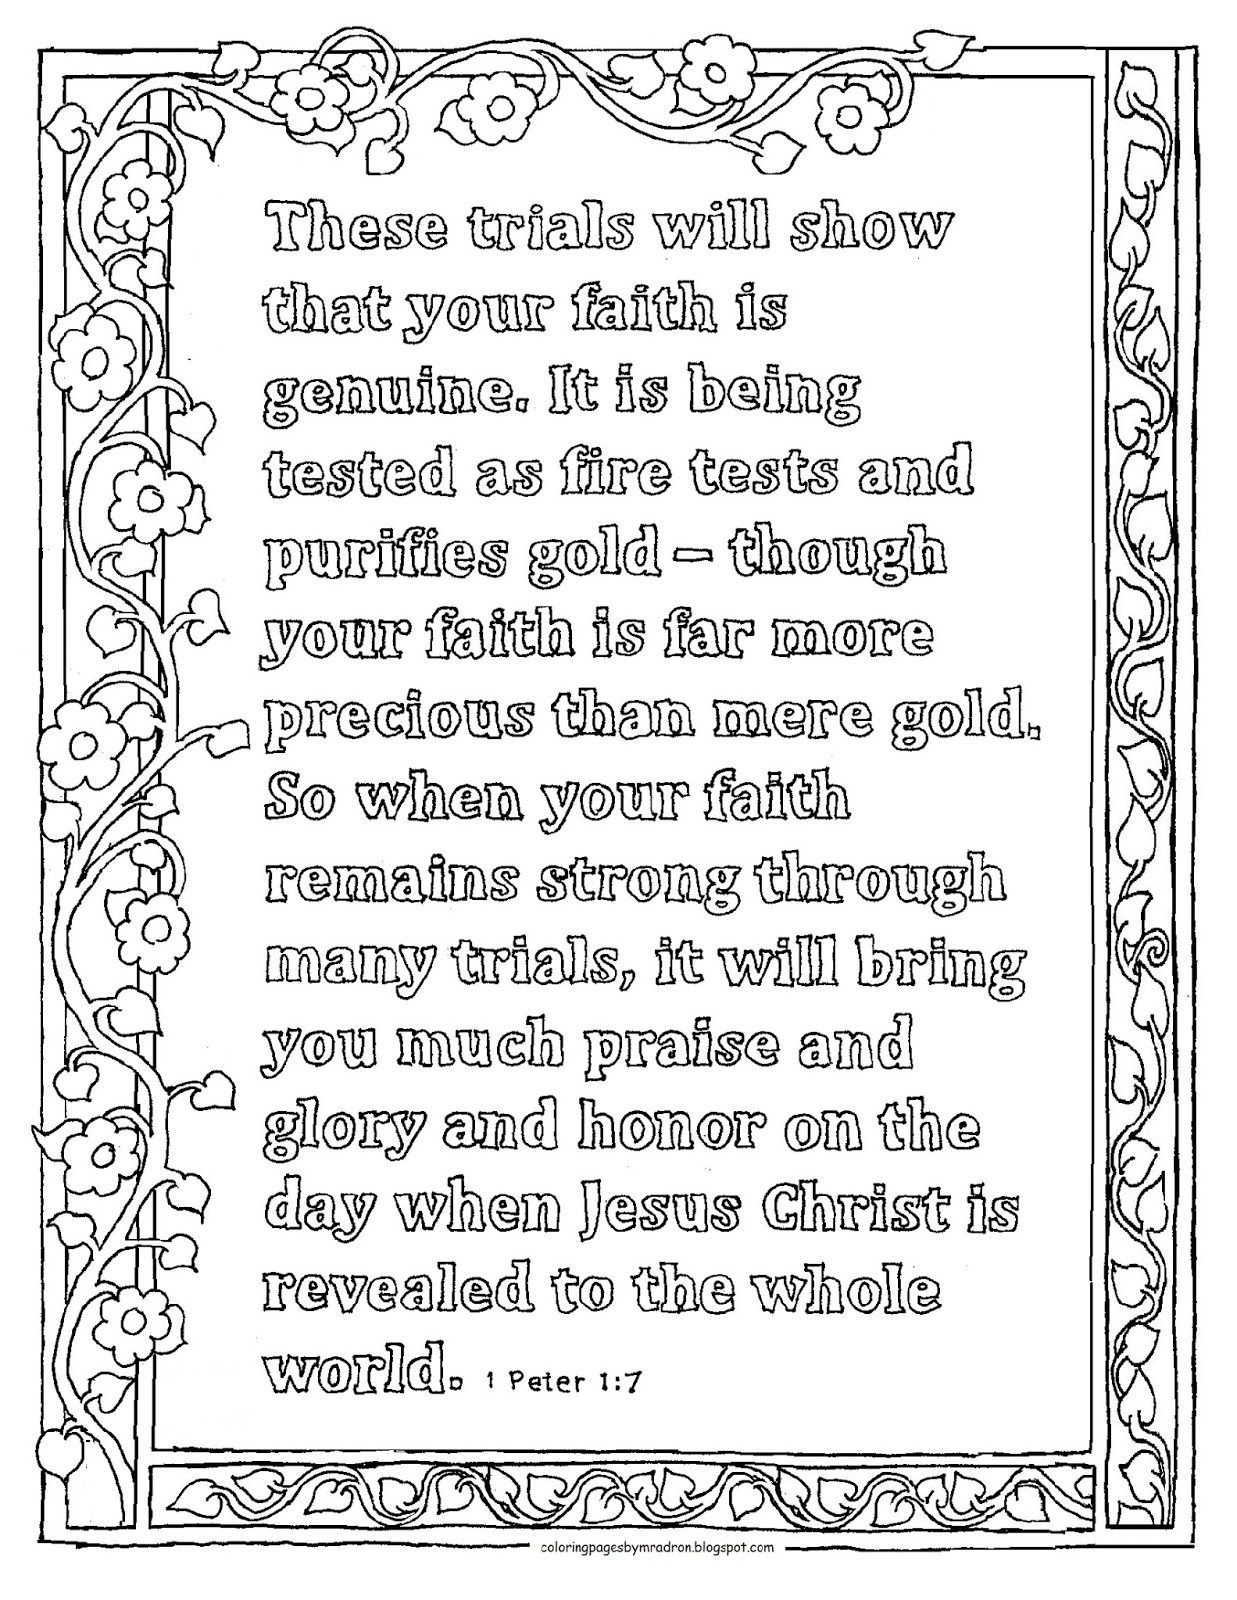 Coloring Pages for Kids by Mr. Adron: 1 Peter 1:7 Print